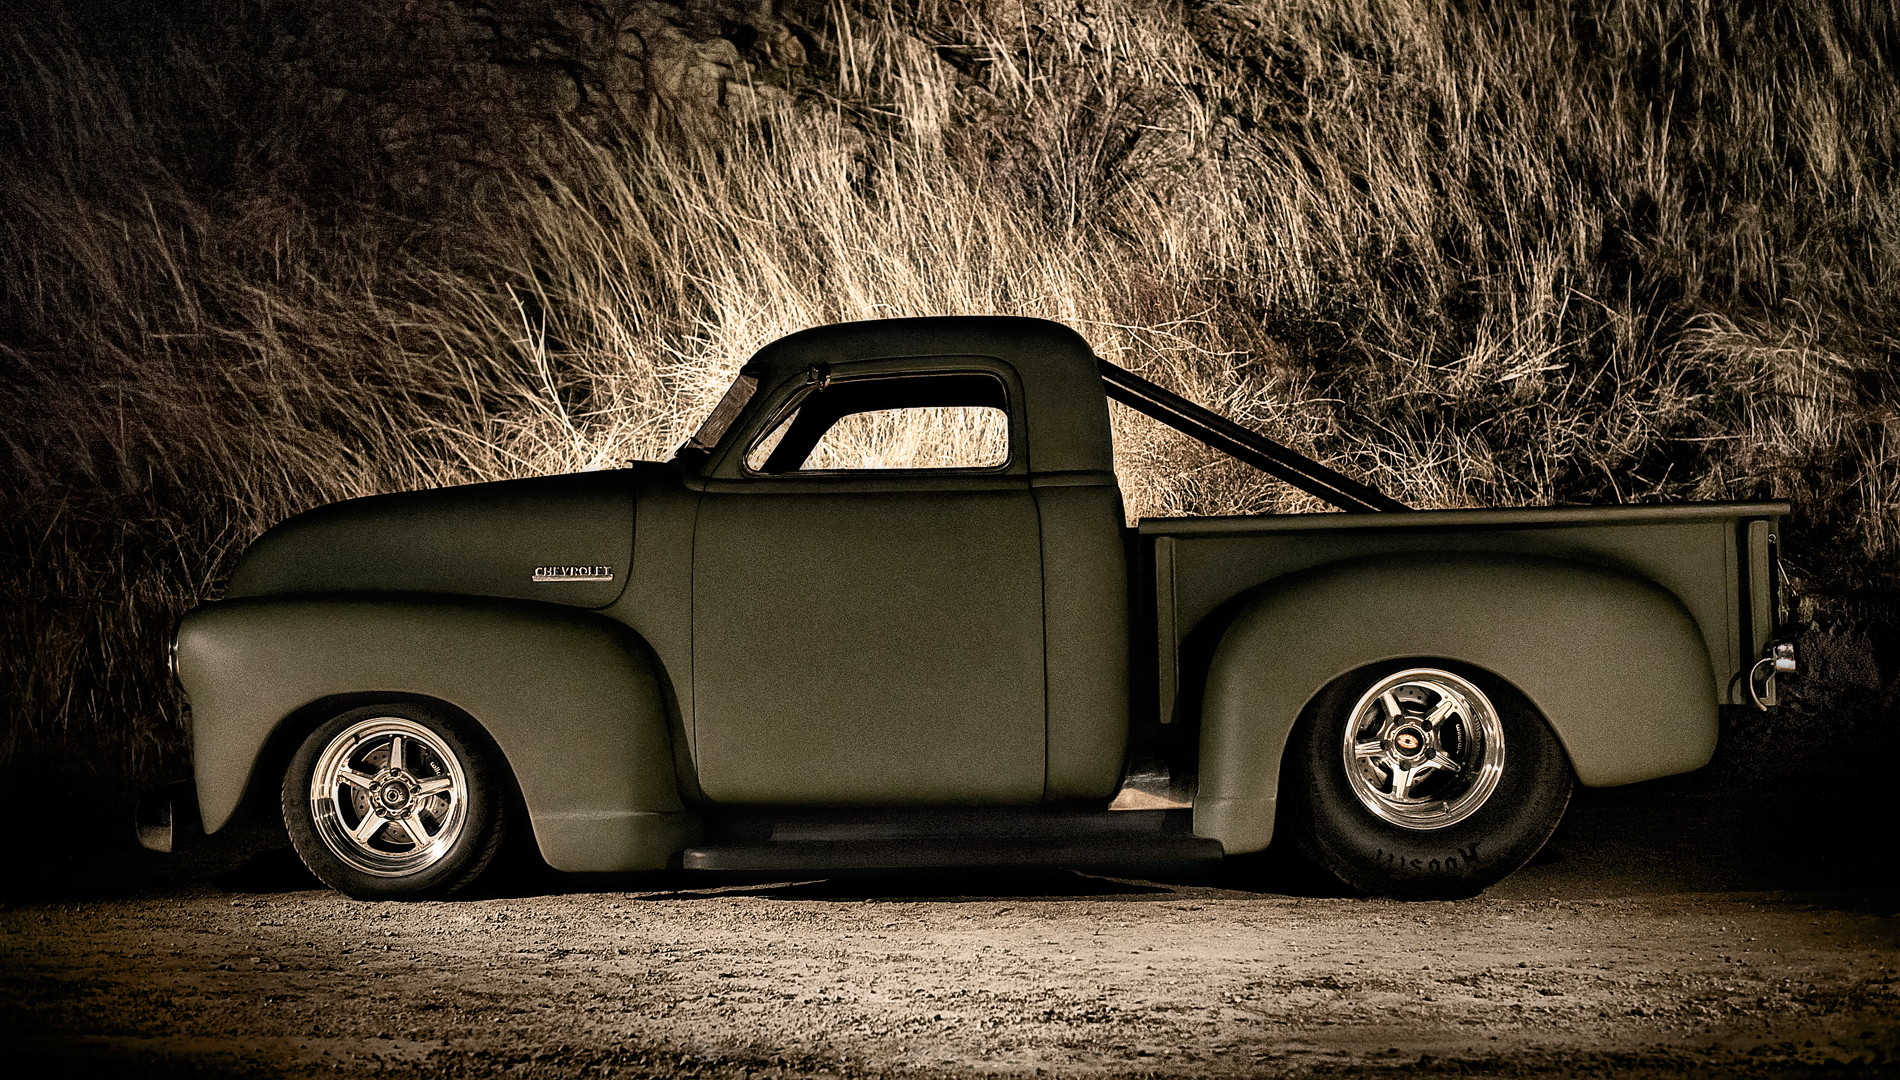 jay_chevy_truck_1080